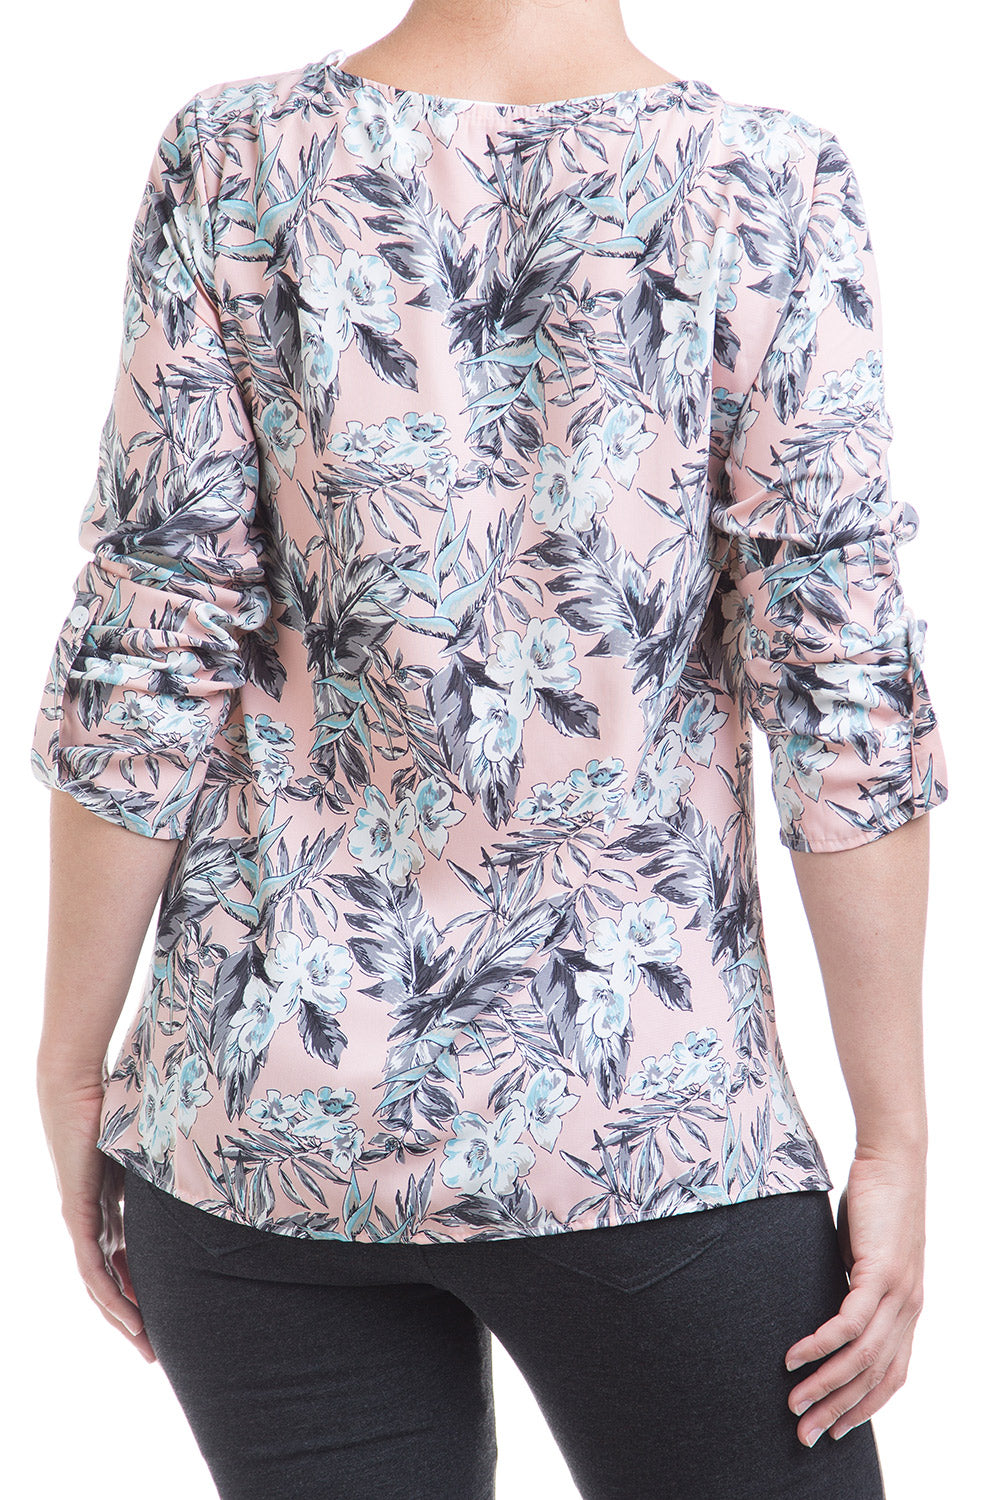 Type 2 Soft Rain Forest Top